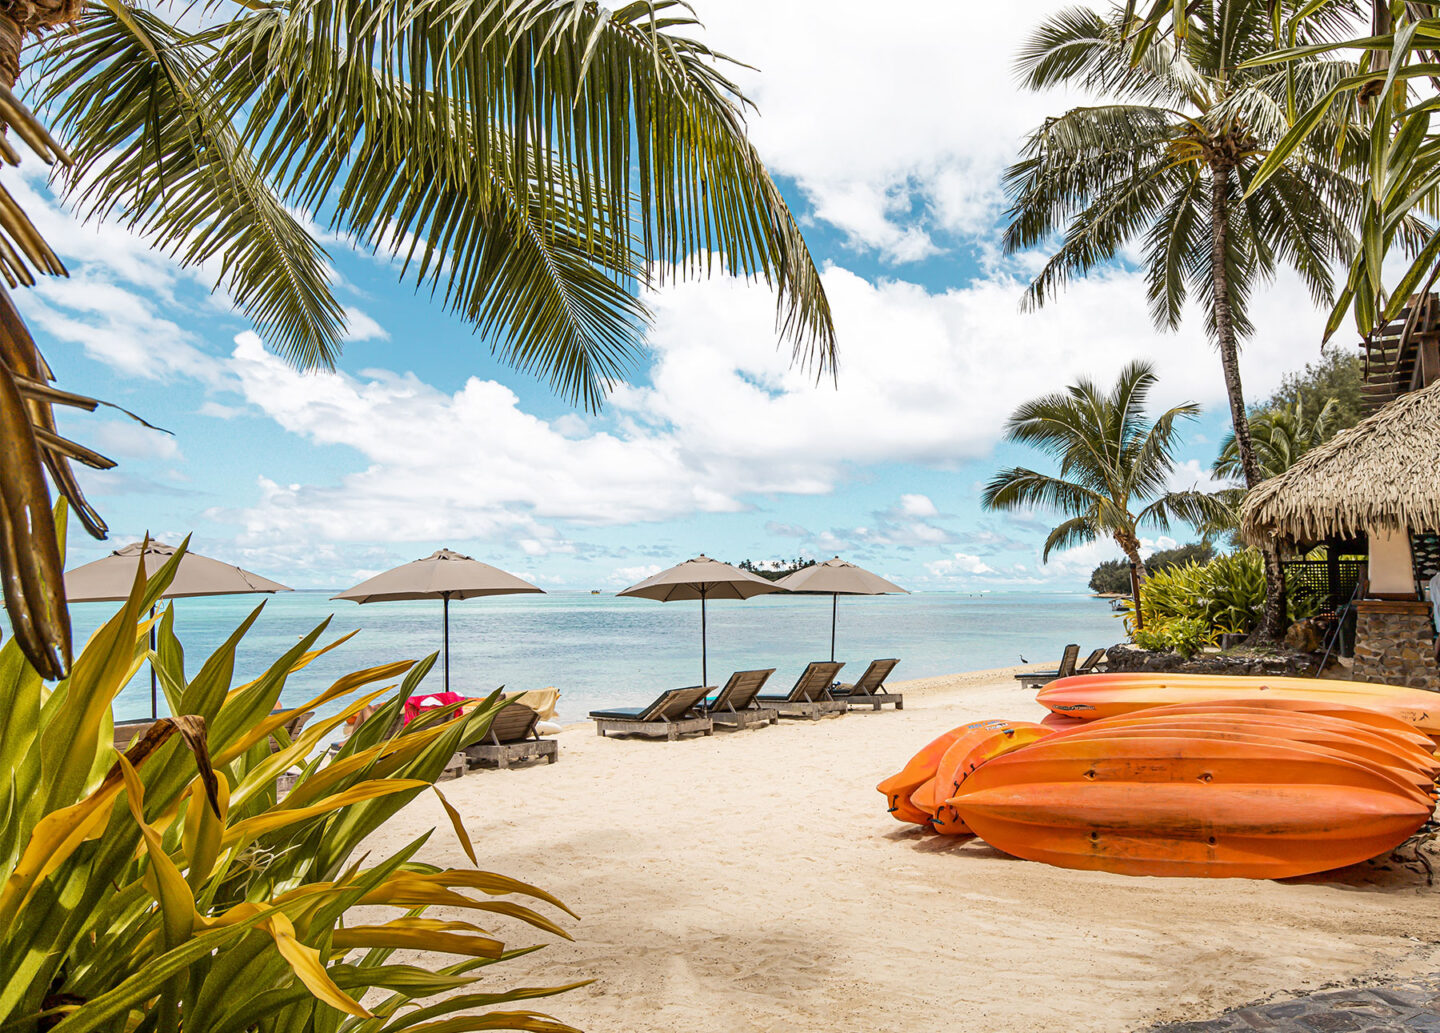 Pacific Resort Rarotonga Cook-Islands-Travel-Guide-–-Rarotonga-–-Aitutaki-–-Kelsey-Heinrichs---@kelseyinlondon